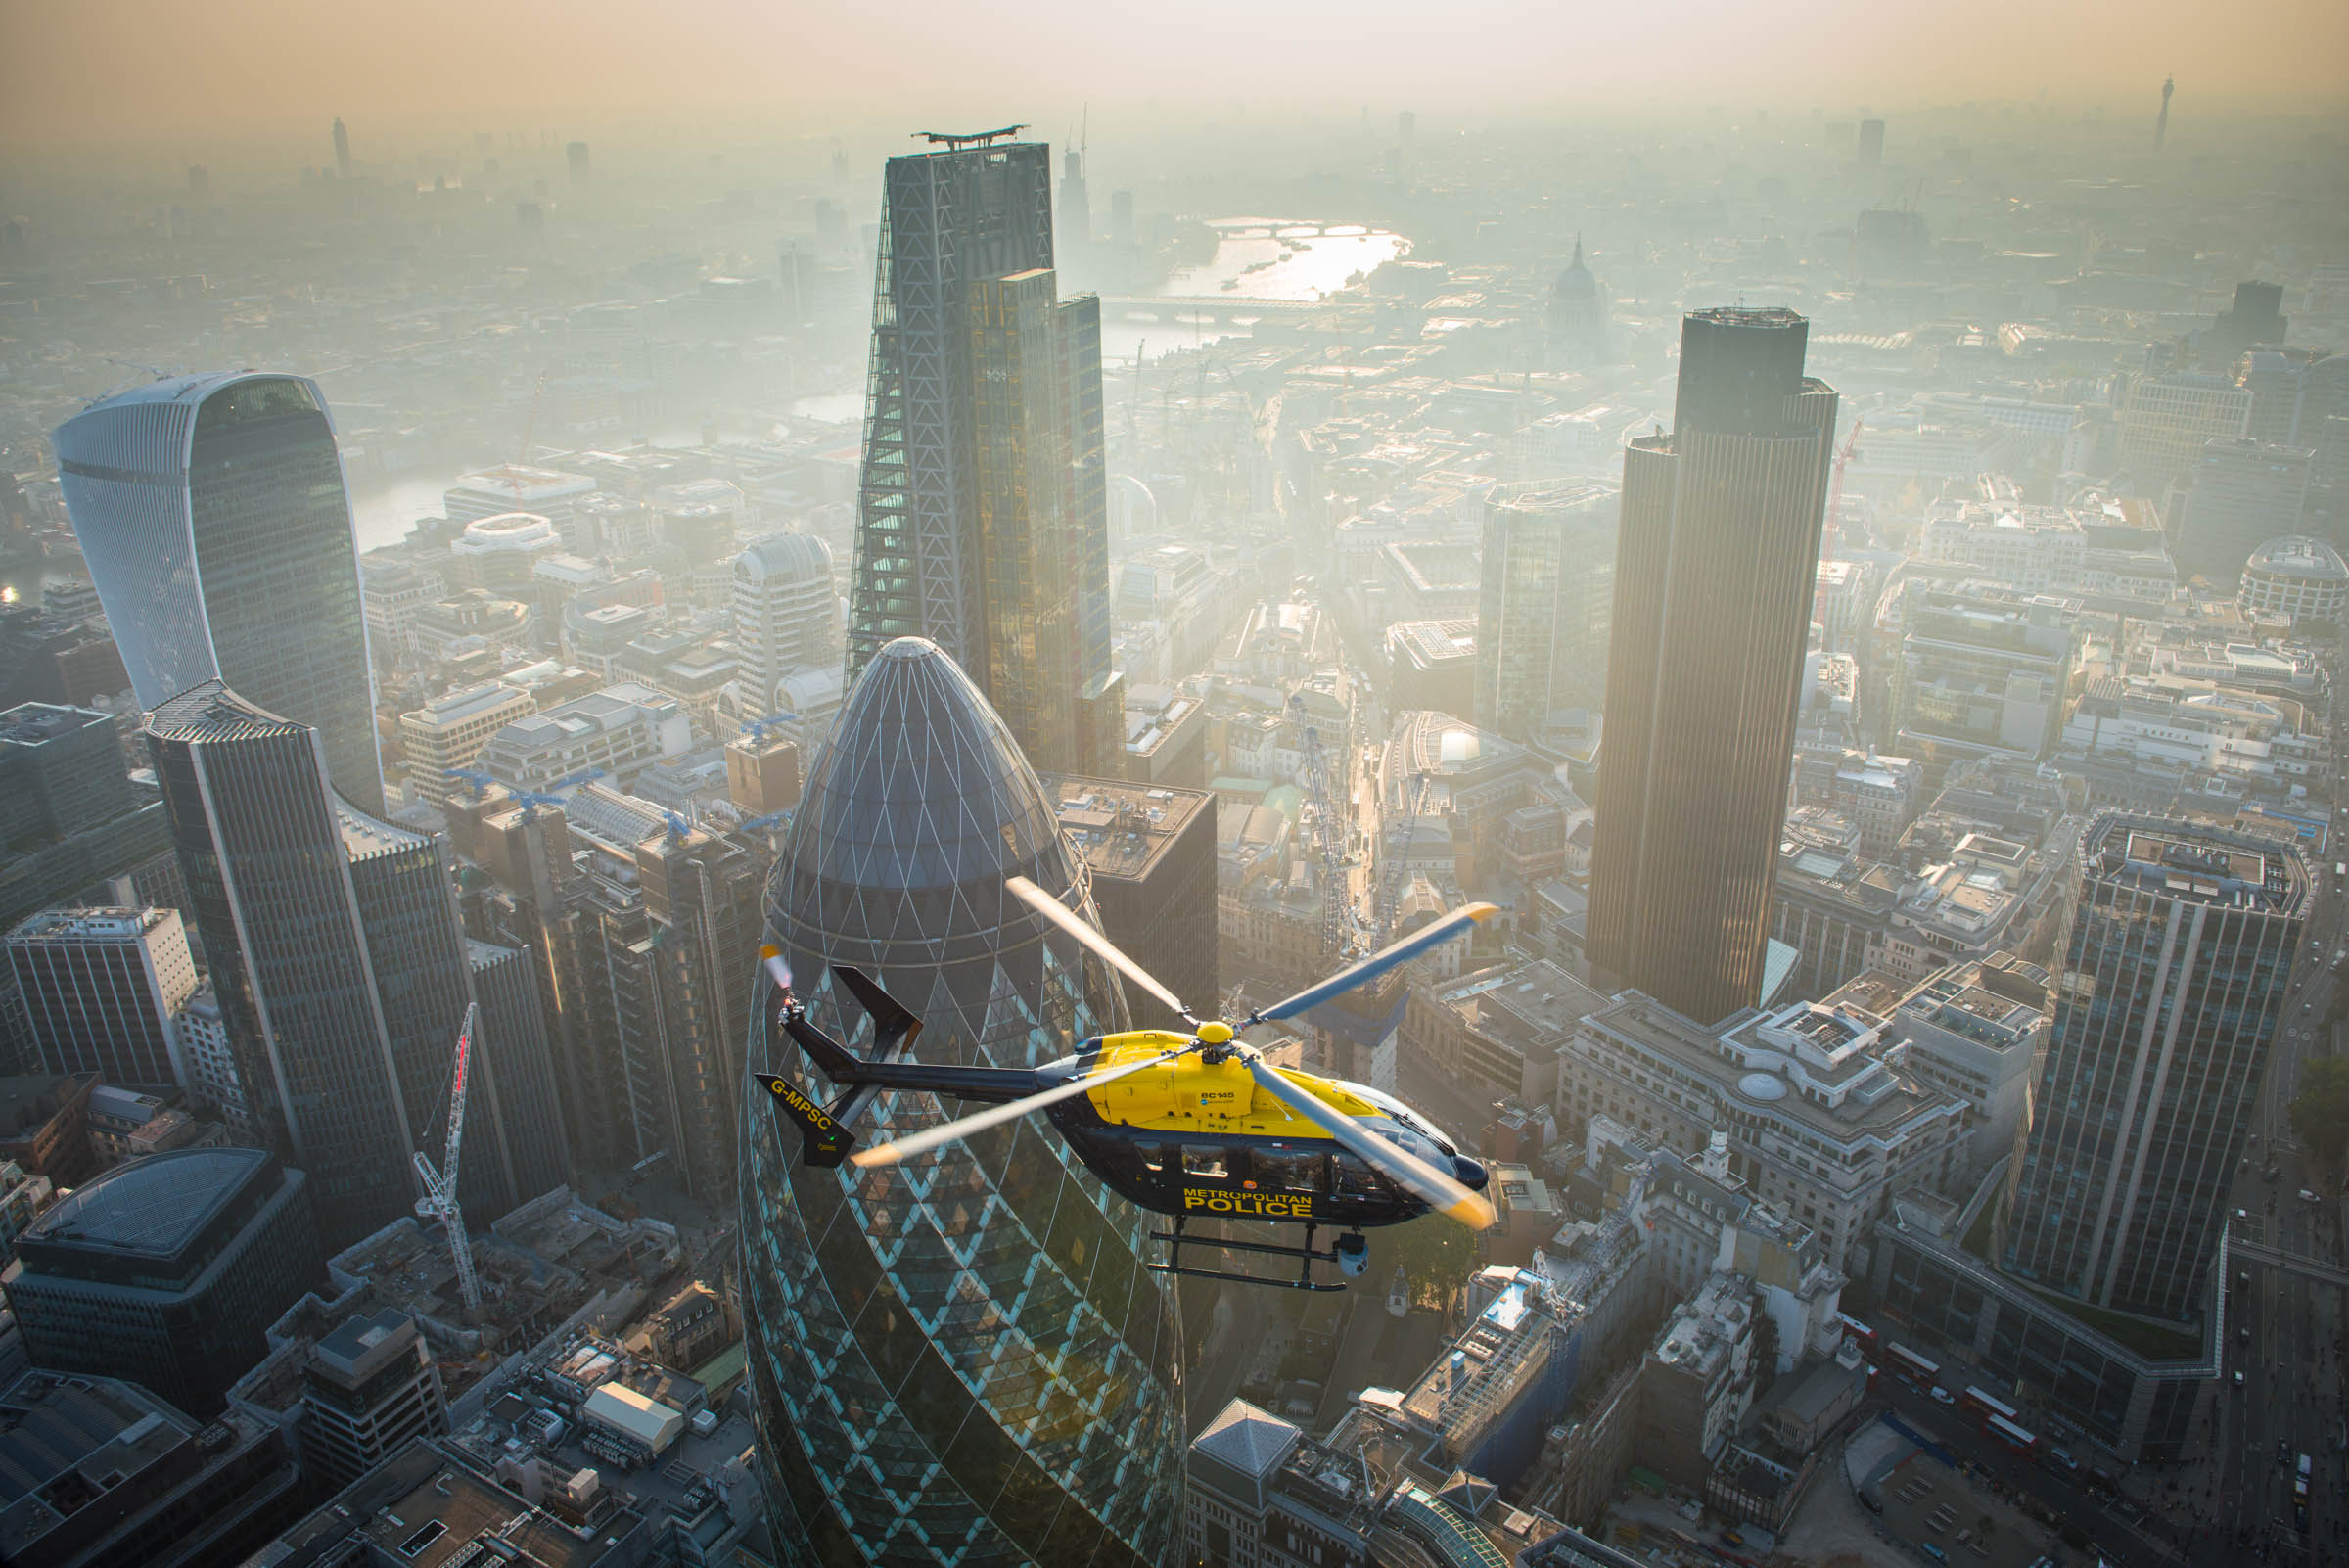 G-MPSC police helicopter over City of London